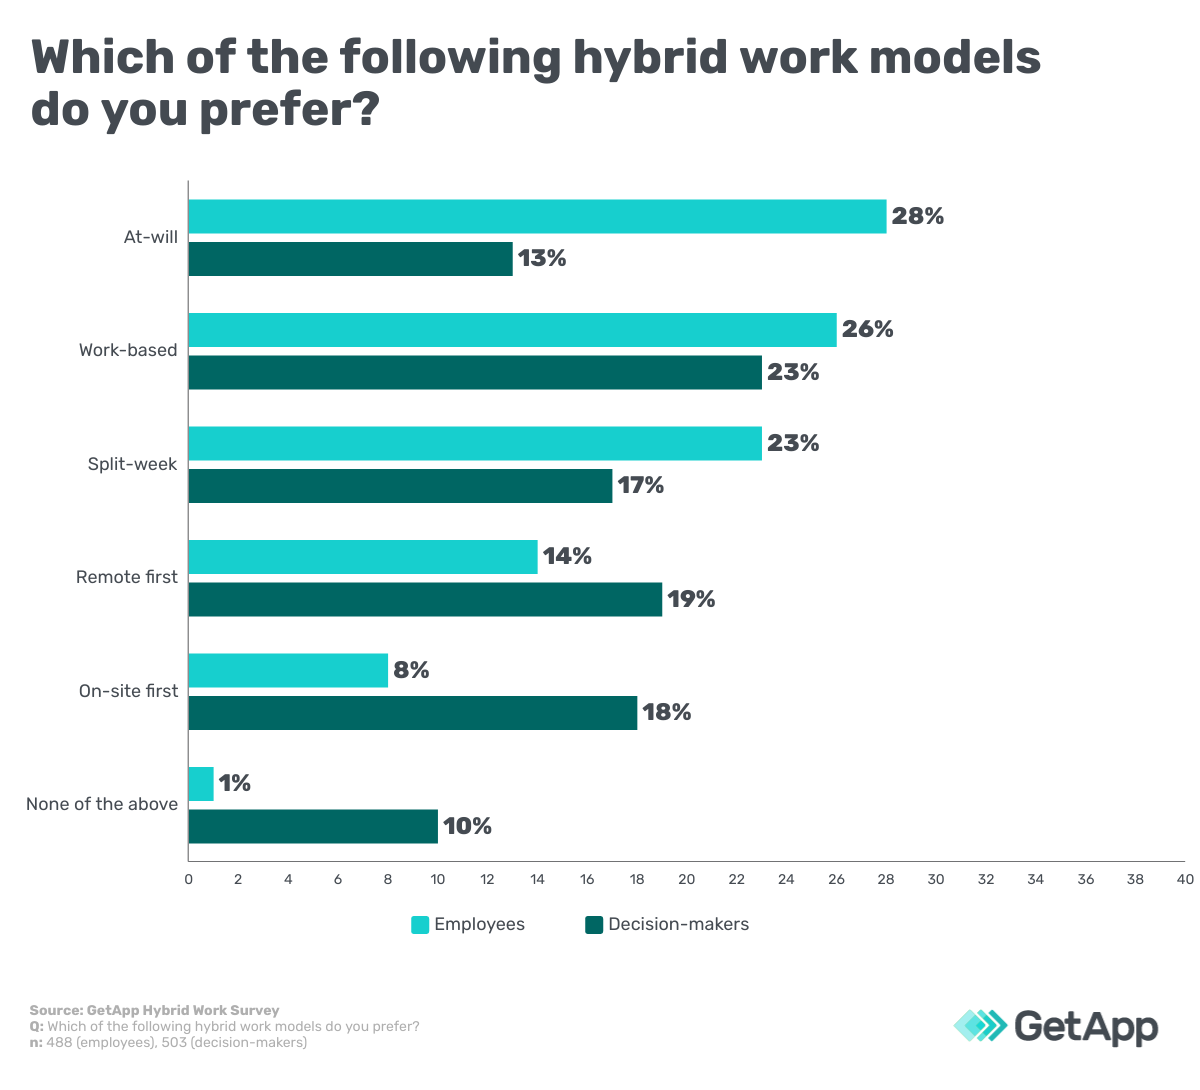 Which of the follow hybrid work models do you prefer?